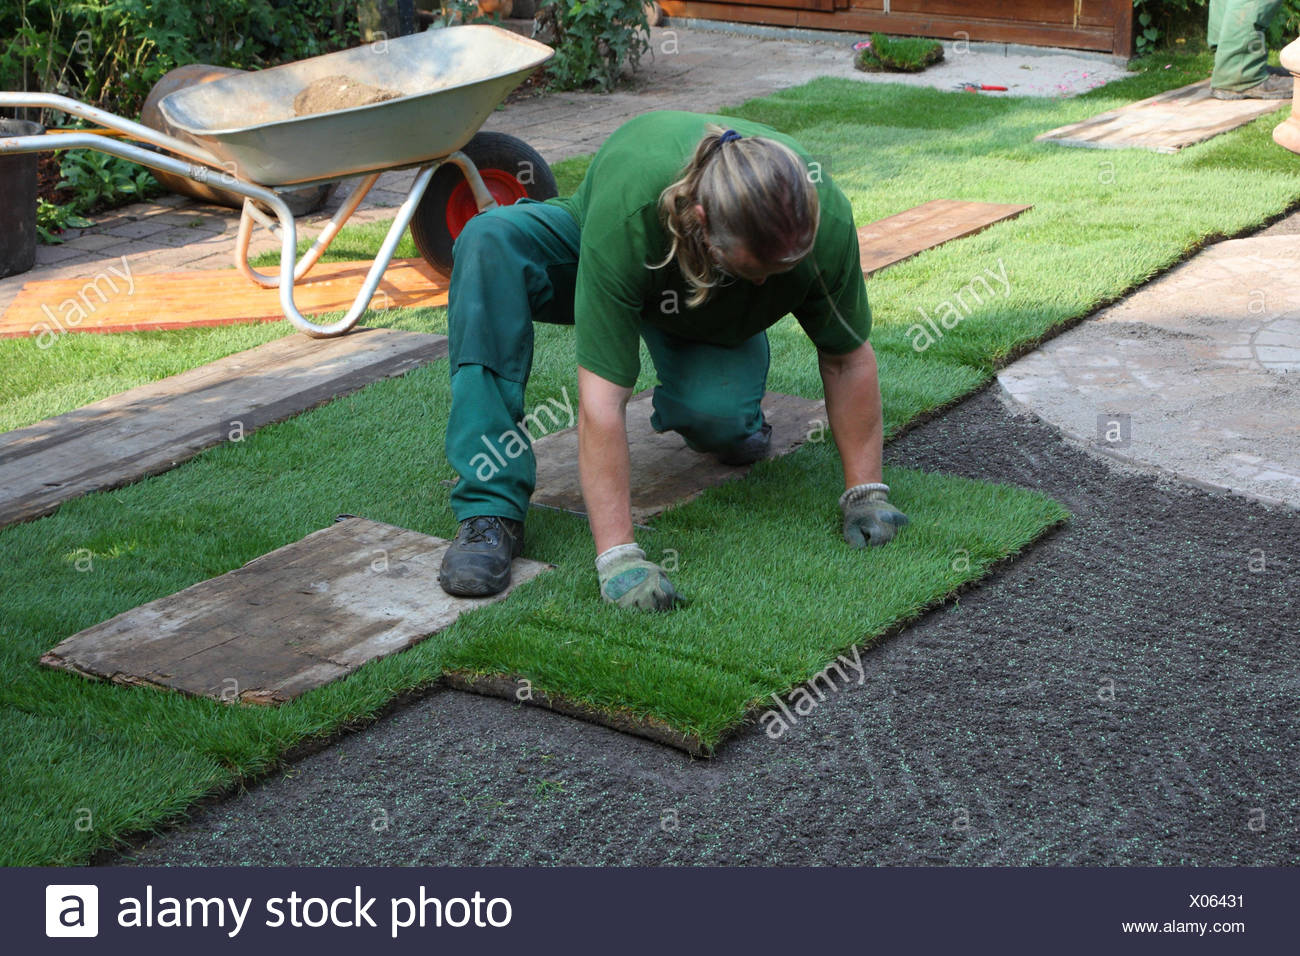 Invest of a rolling turf in the garden, - Stock Image